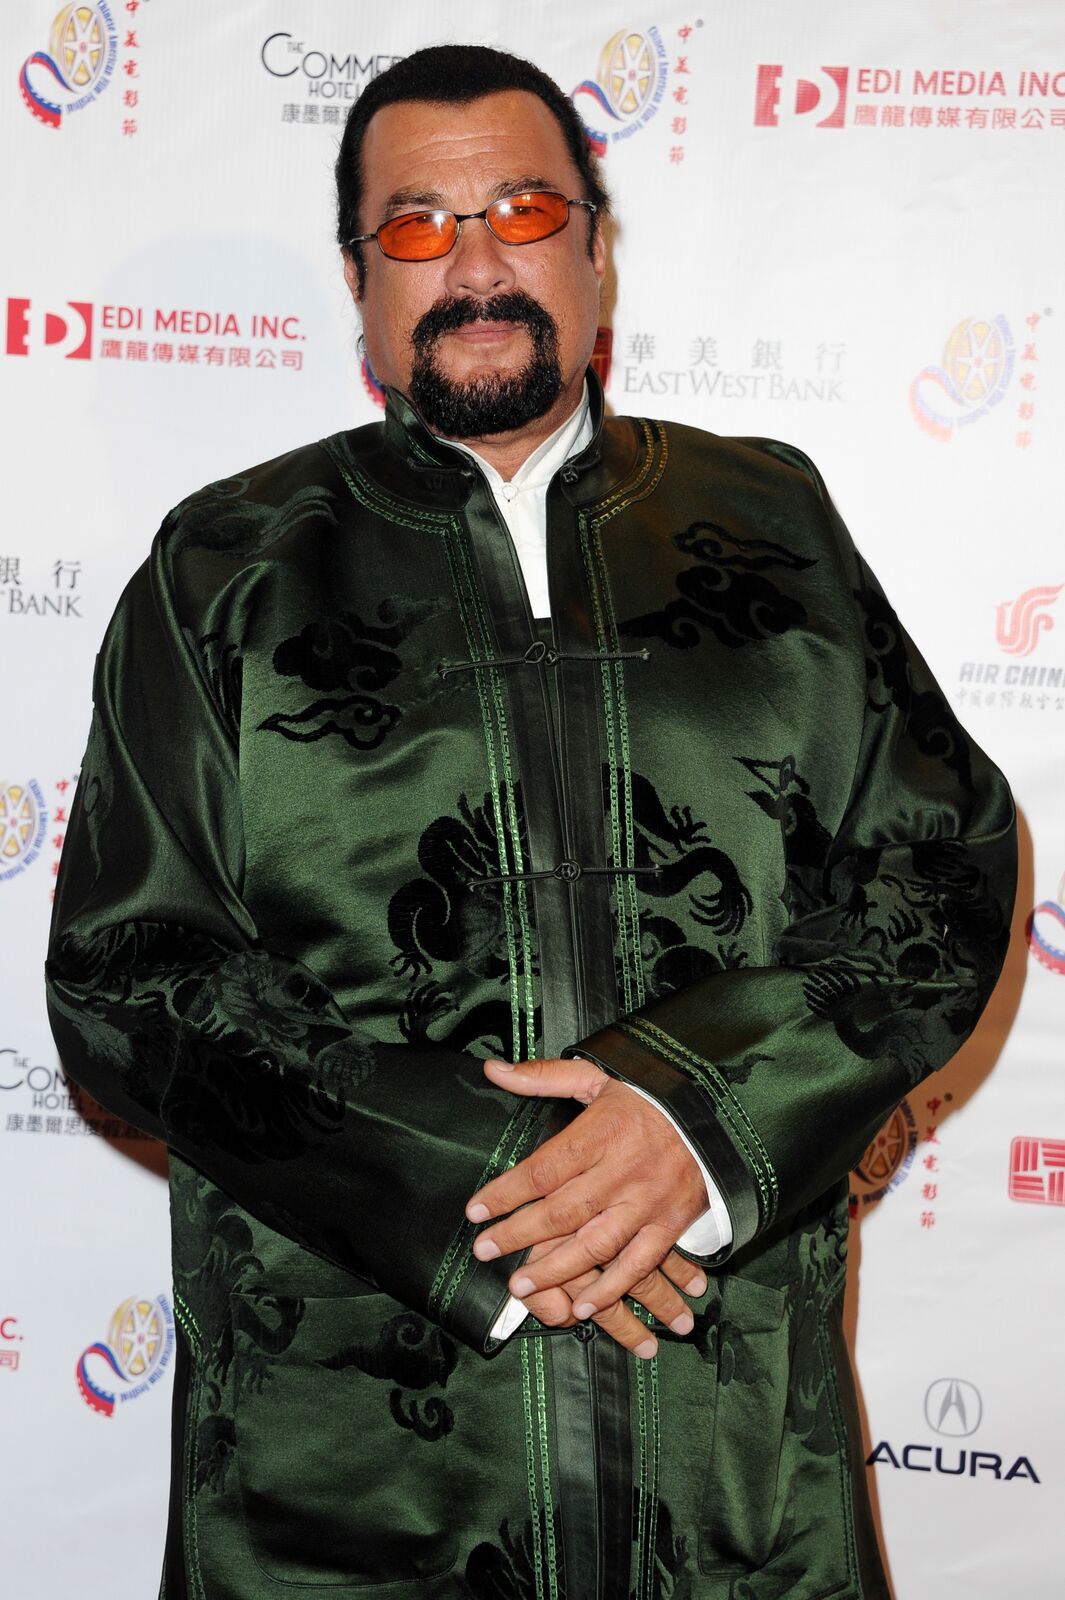 Actor Steven Seagal attends 2014 Chinese American Film Festival - Opening Night Ceremony at Pasadena Civic Auditorium on November 4, 2014 in Pasadena, California | Photo: Getty Images